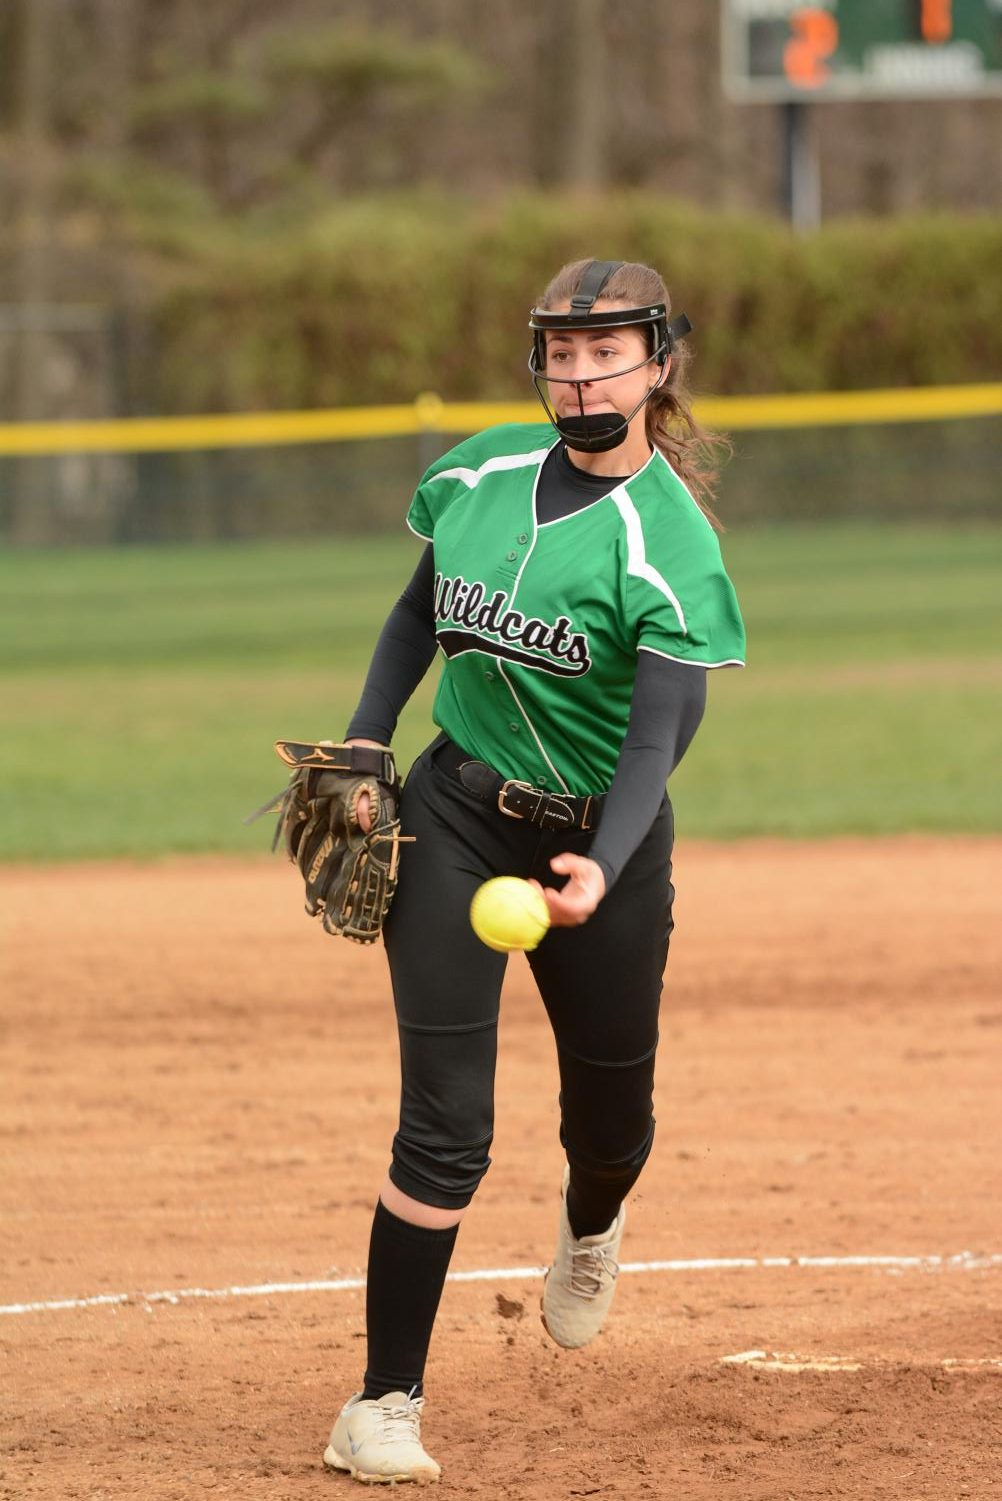 Senior captain Jessica Kaplan tosses the ball to one of her teammates. Softball finished with a 3-7 record this season. Photo courtesy of Lifetouch Studios.